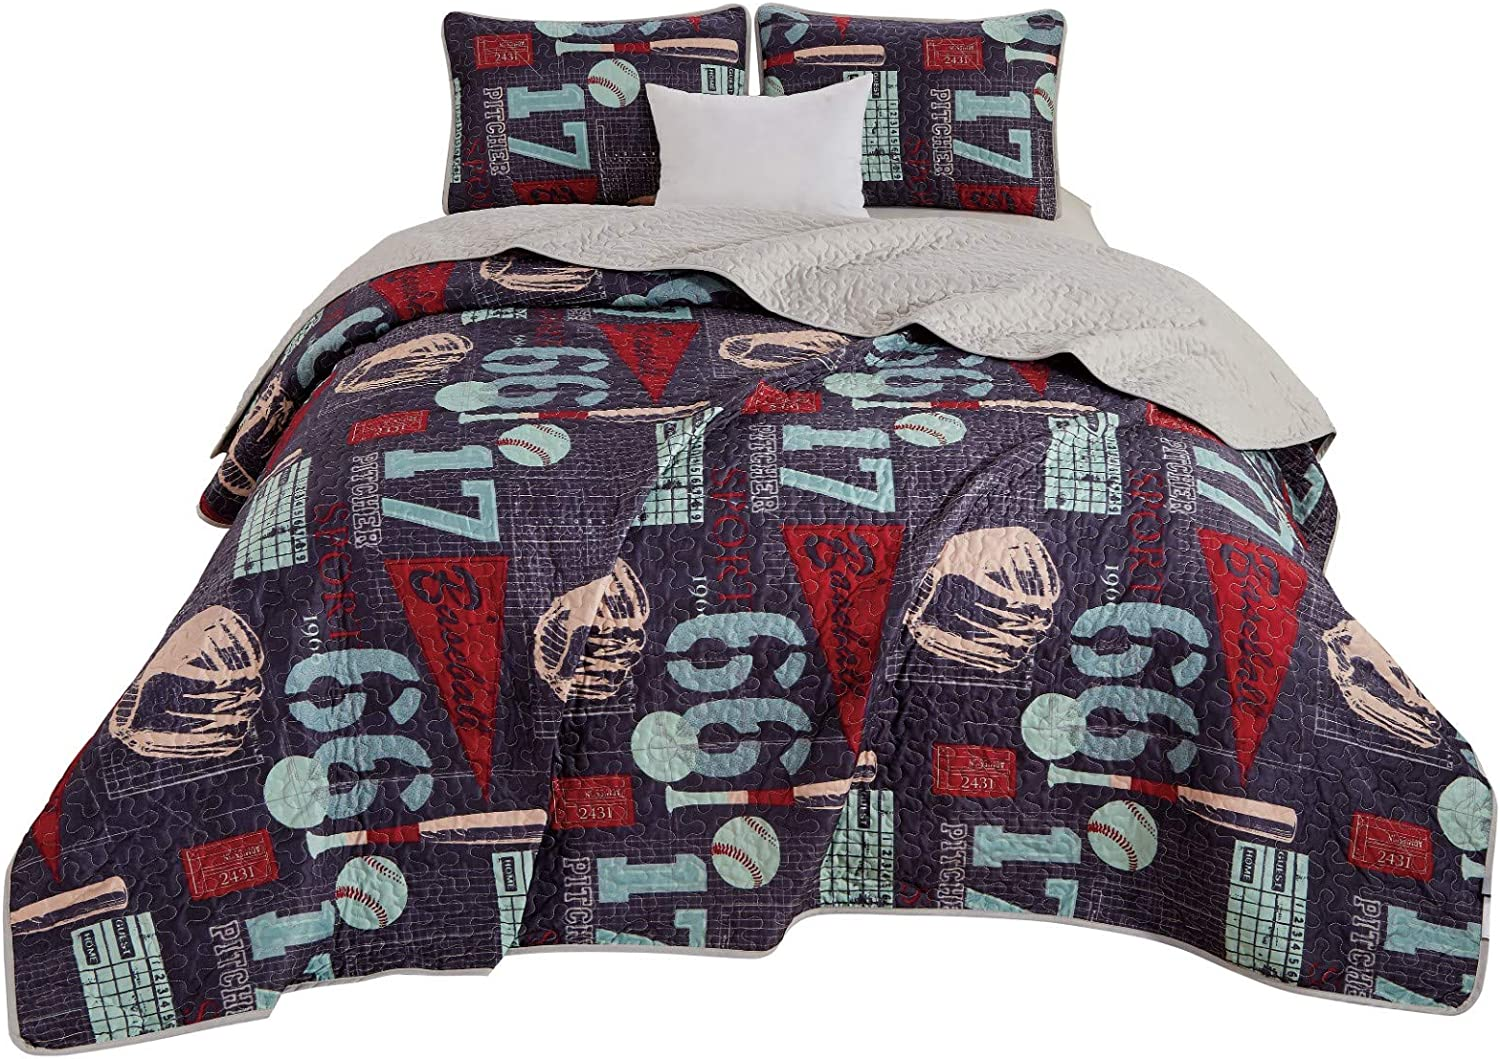 Chezmoi Collection 3-Piece Kids//Teens Sports Bedspread Quilt Set Full//Queen Size Soft Microfiber Navy Blue Black Orange Red White Basketball Football Soccer